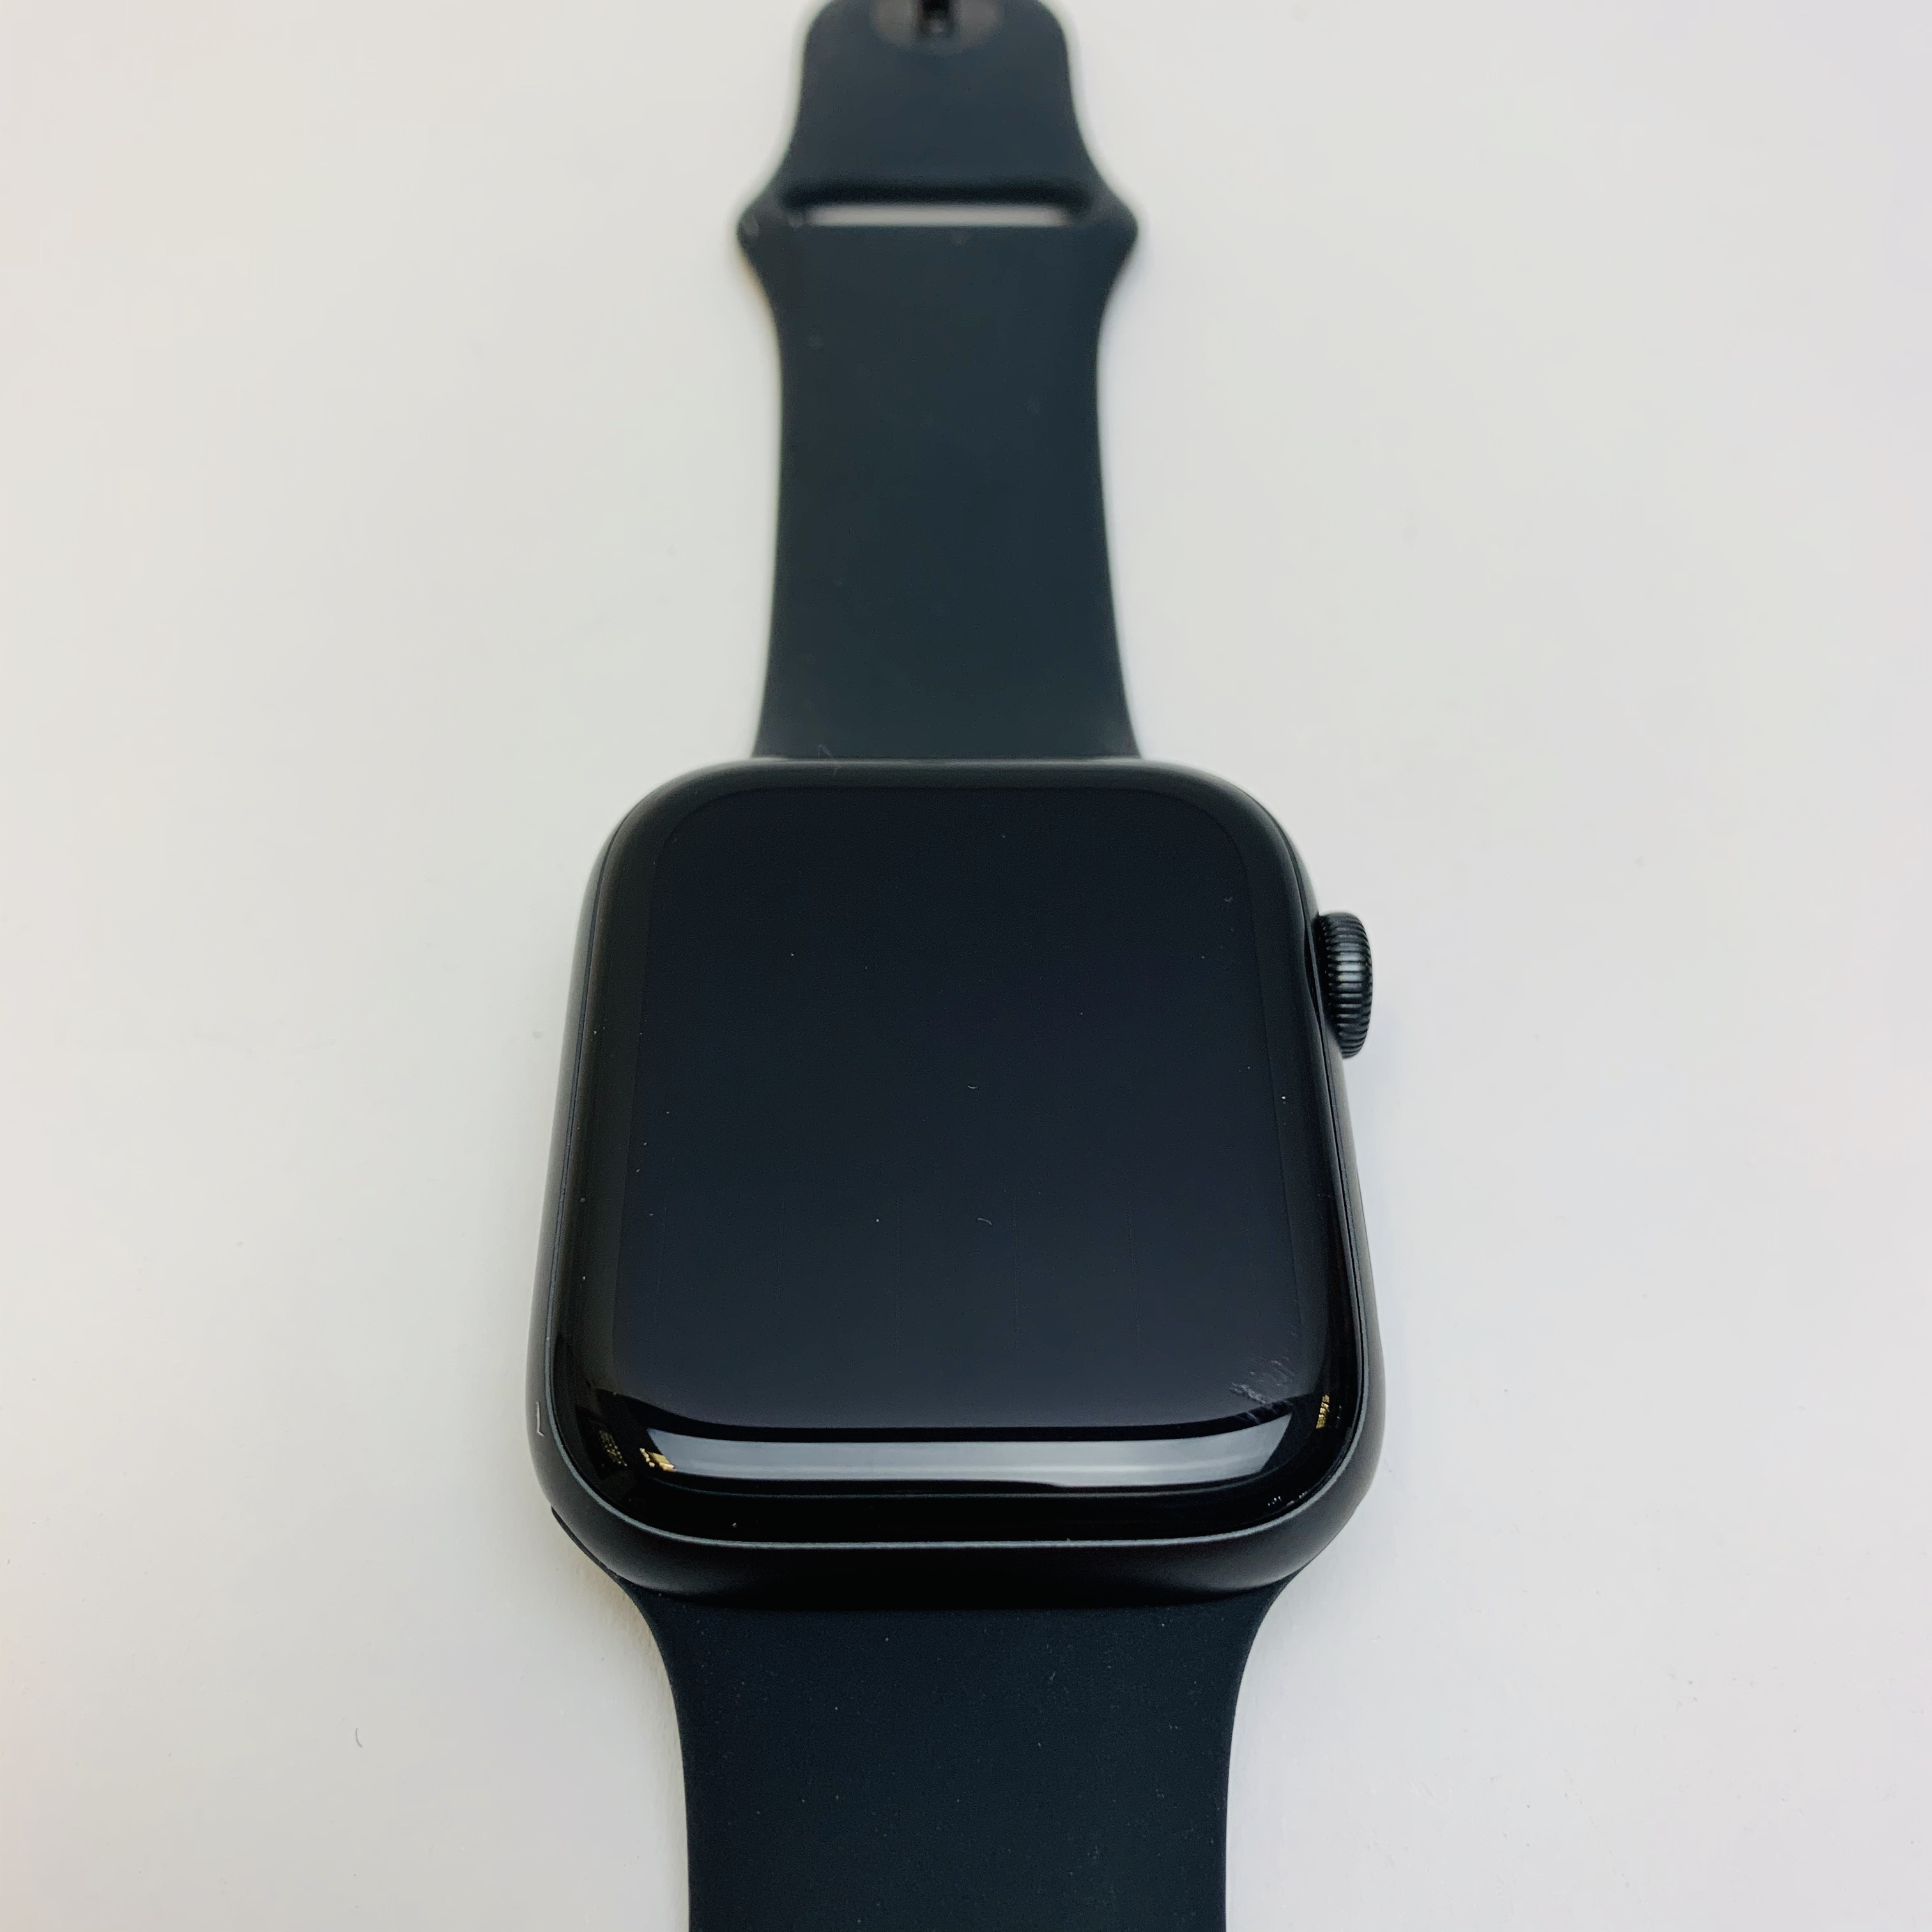 Watch Series 5 Aluminum (44mm), Space Gray, image 1